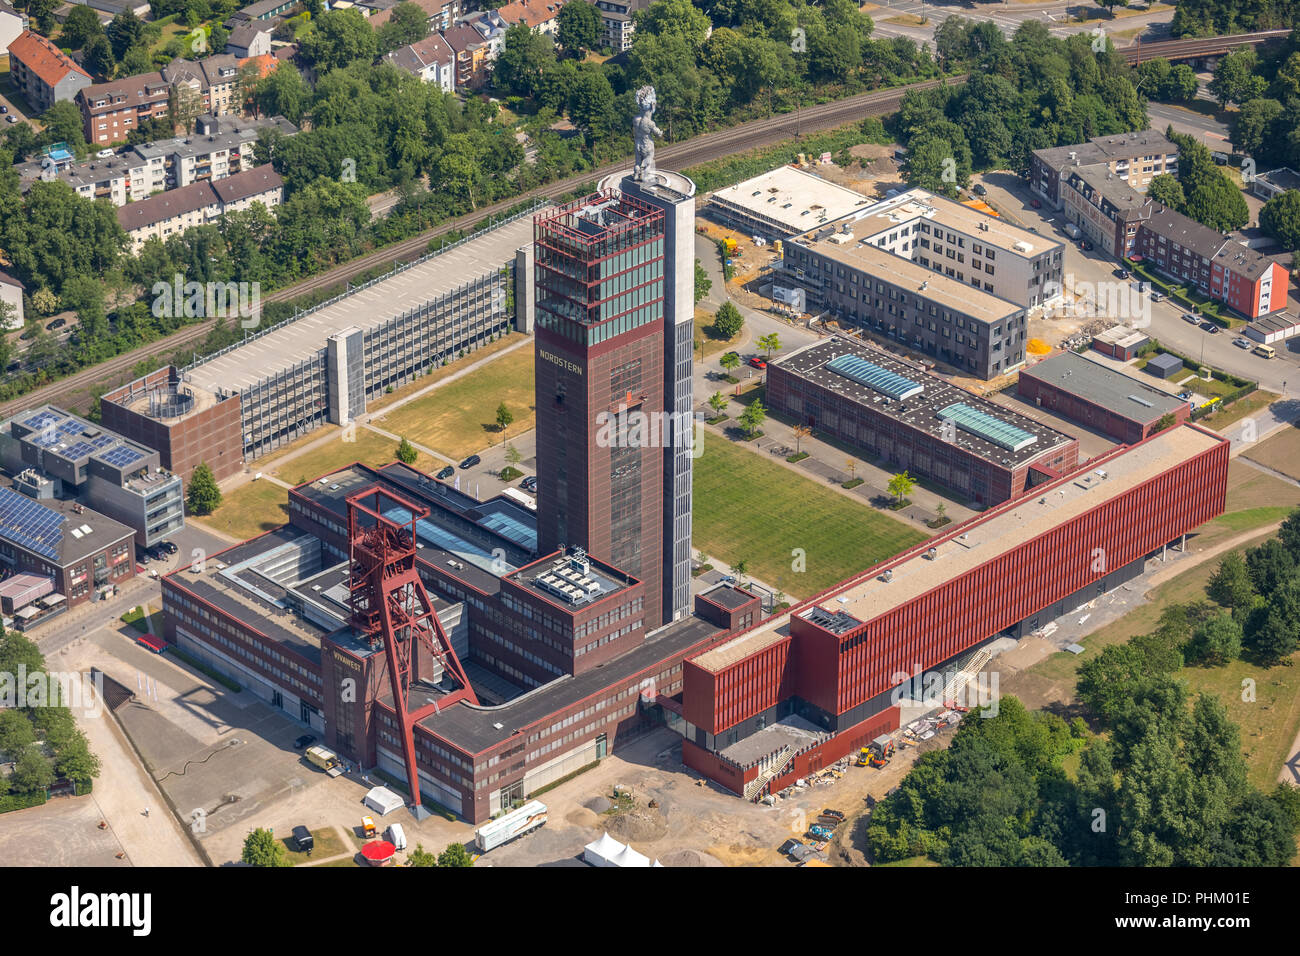 Aerial view, Nordsternpark with edataunited GmbH, new building VIVAWEST and Müller BBM, former colliery Nordstern am Rhein-Herne-Kanal with canal brid - Stock Image